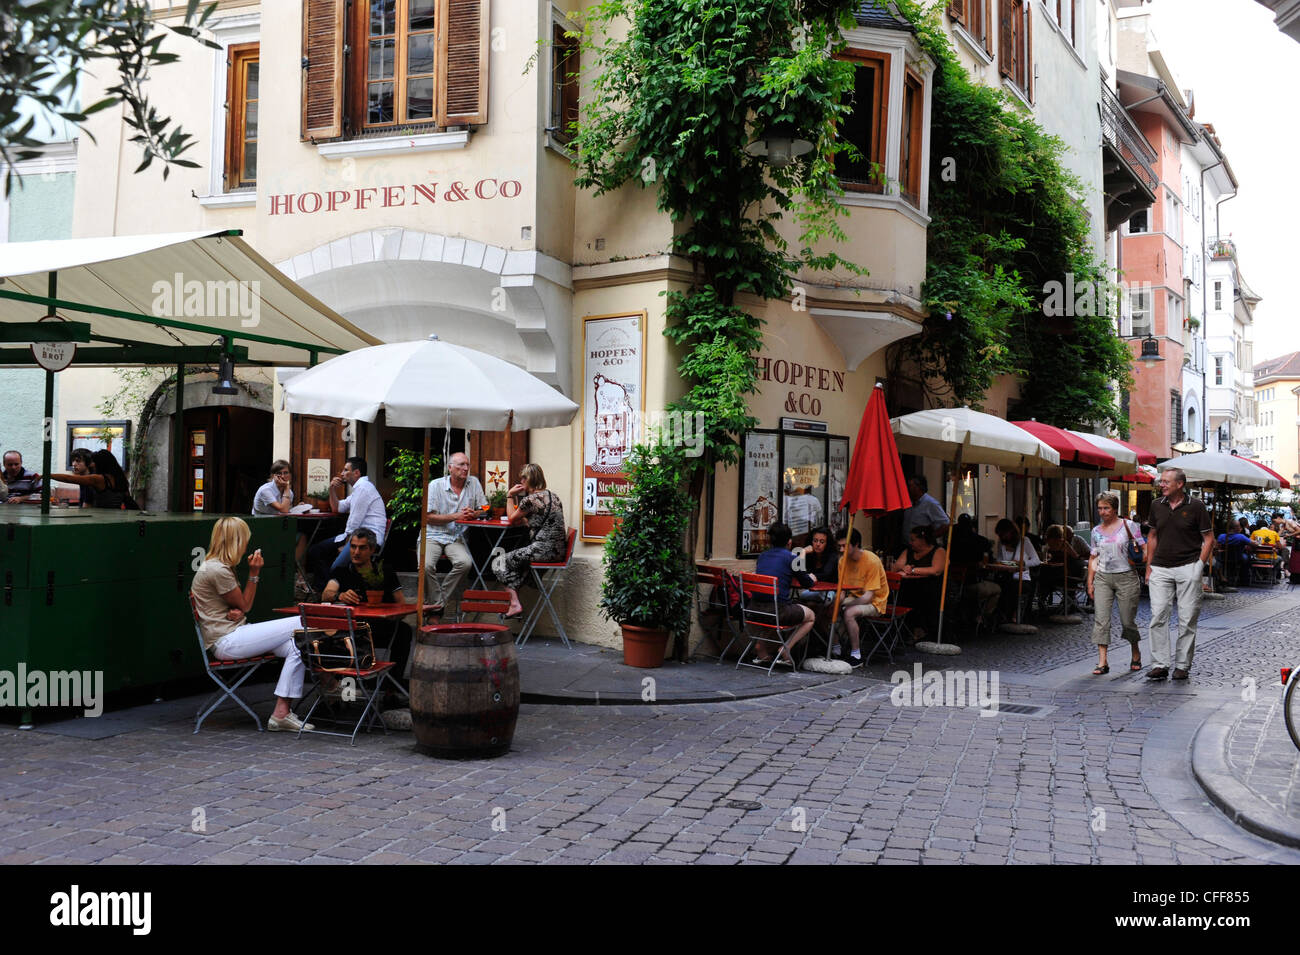 People in restaurants at the old town, Bolzano, South Tyrol, Alto Adige, Italy, Europe - Stock Image